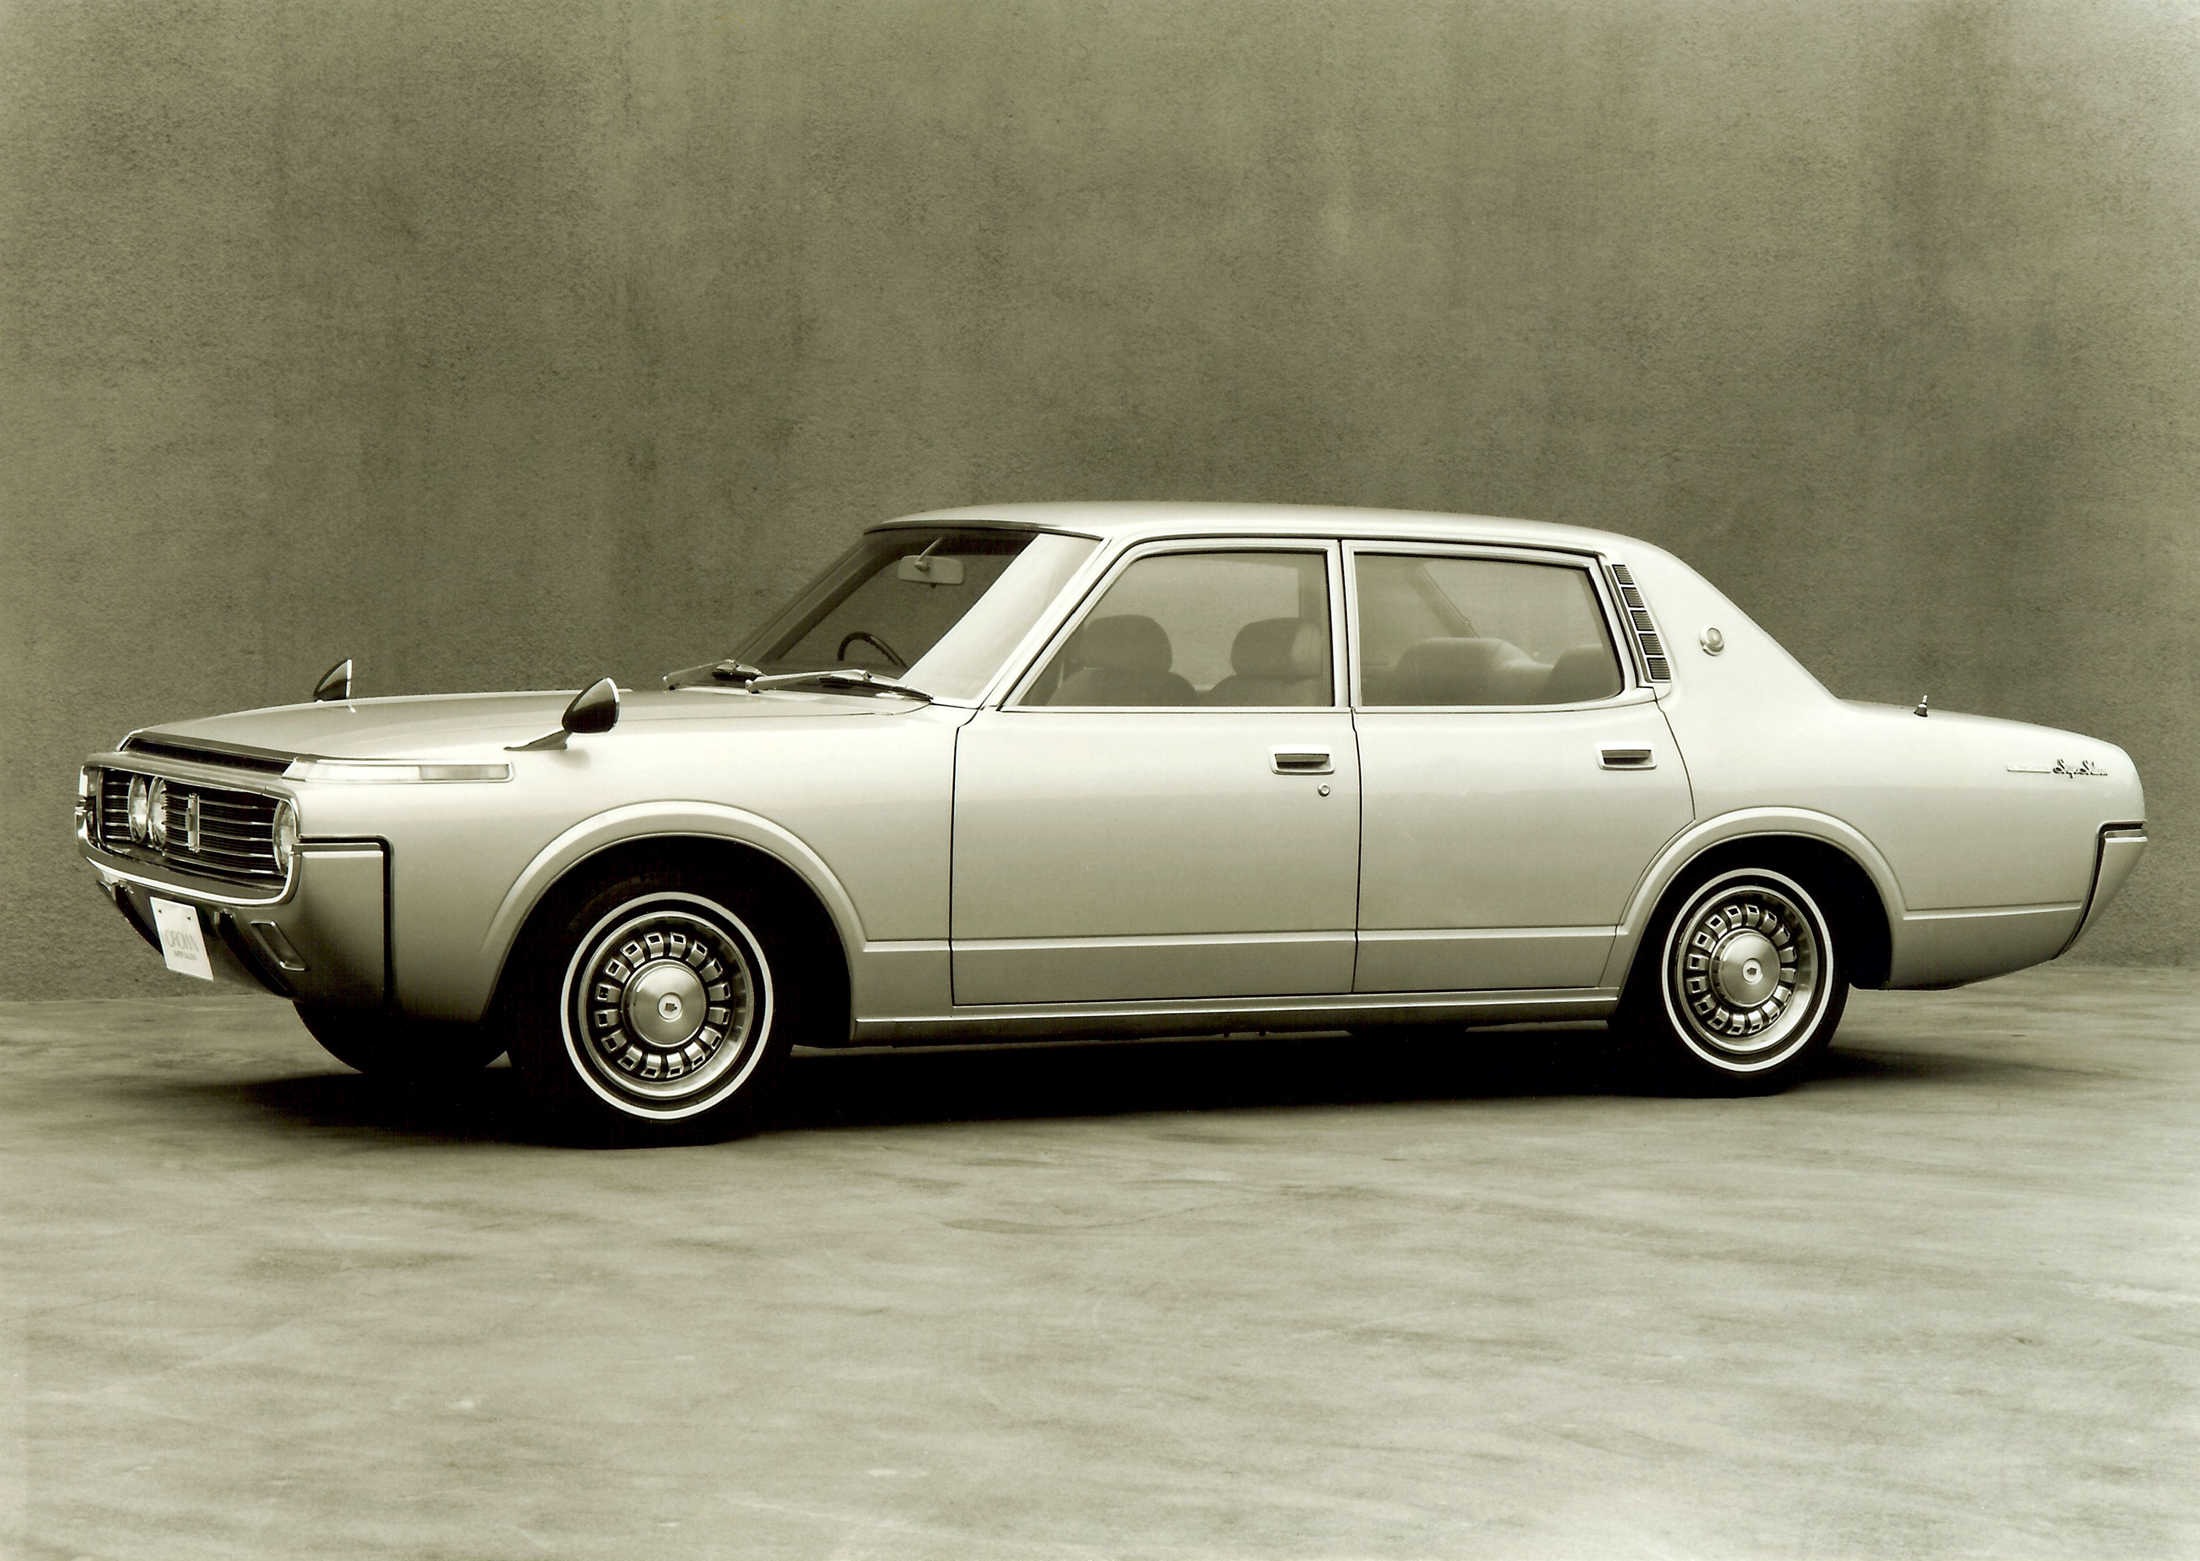 Toyota Crown 1971 | Flickr - Photo Sharing!